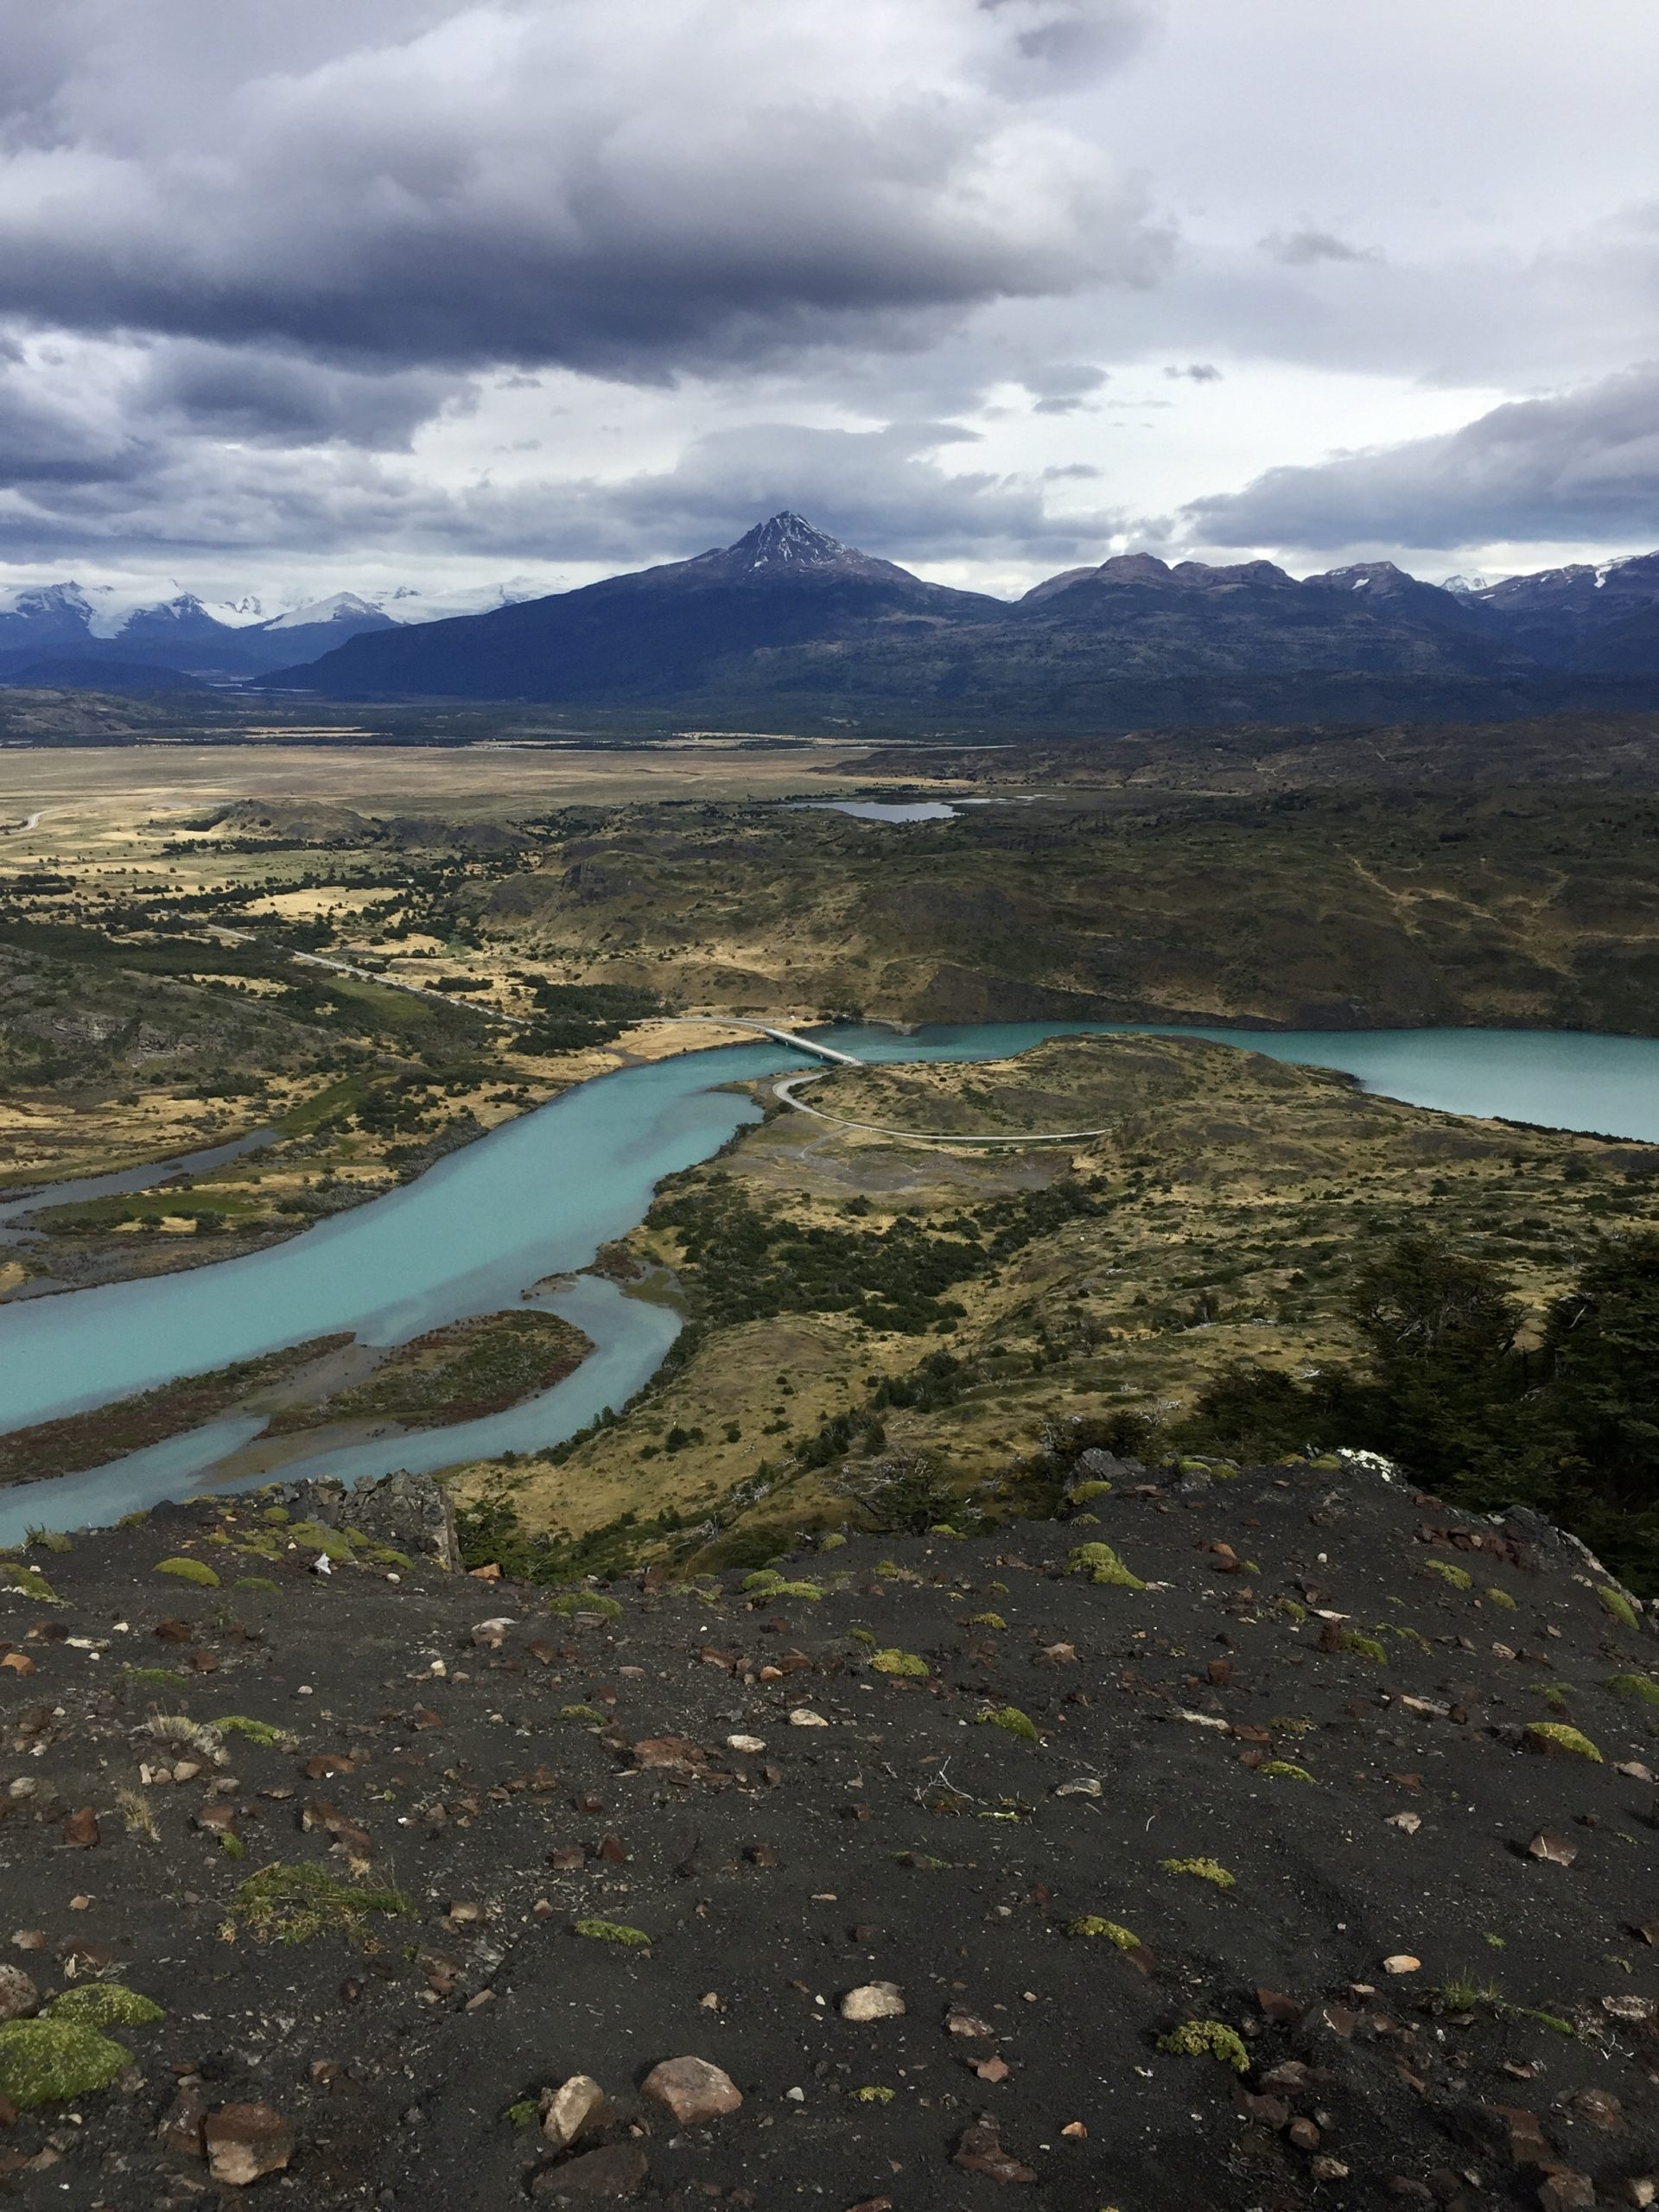 Water track hike in Torres Del Paine